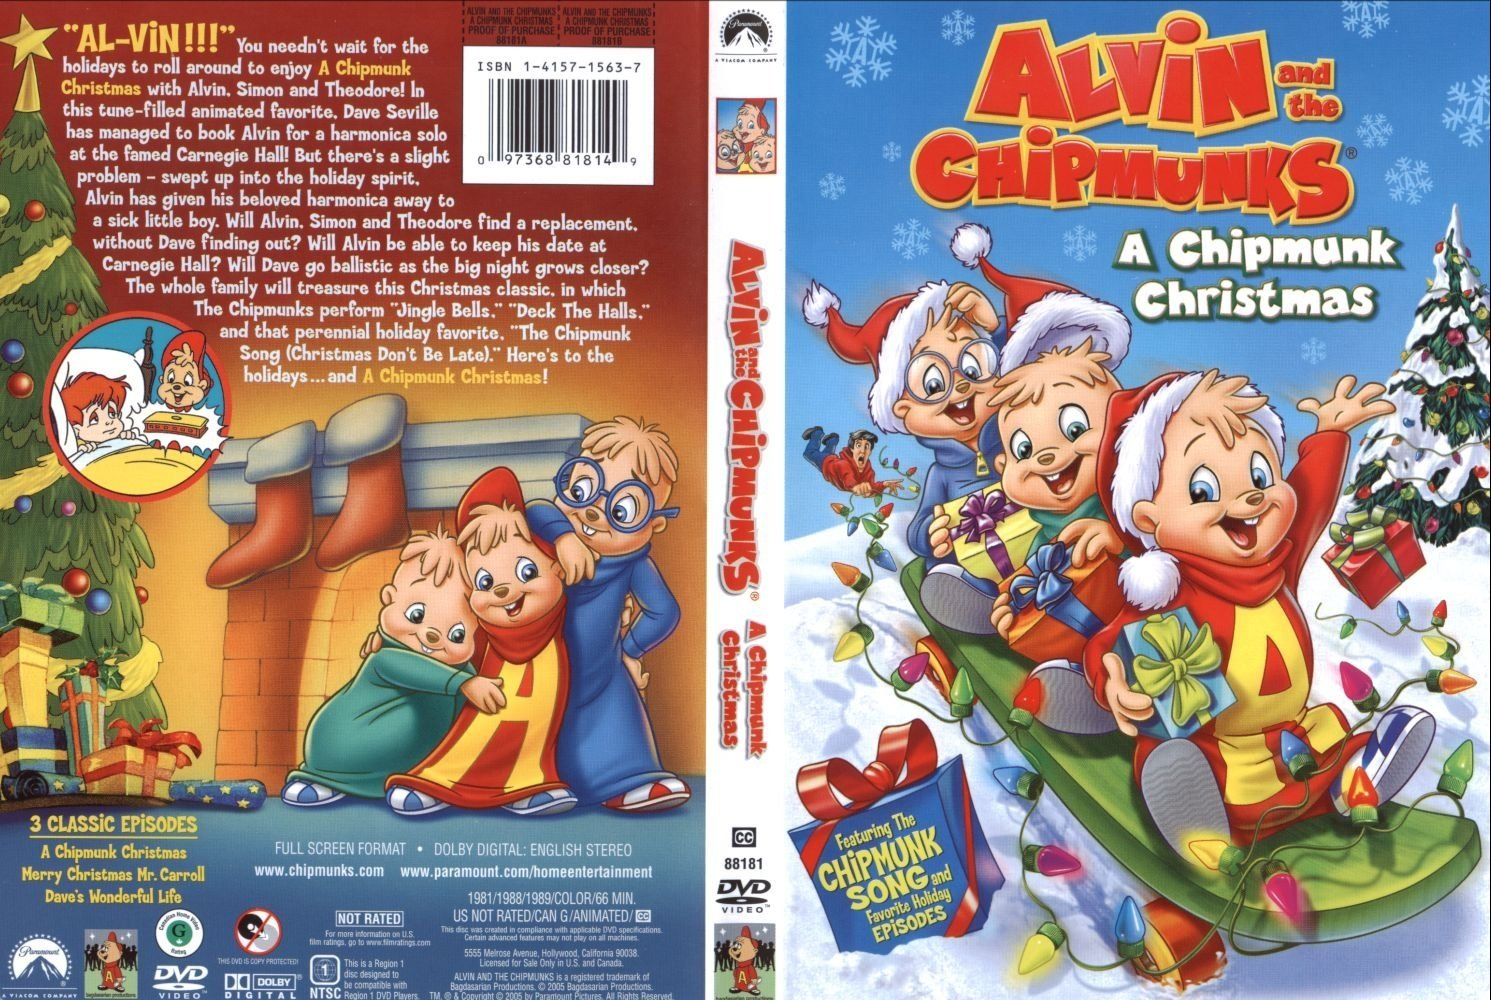 Alvin And The Chipmunks Christmas.Covers Box Sk Alvin And The Chipmunks A Chipmunk